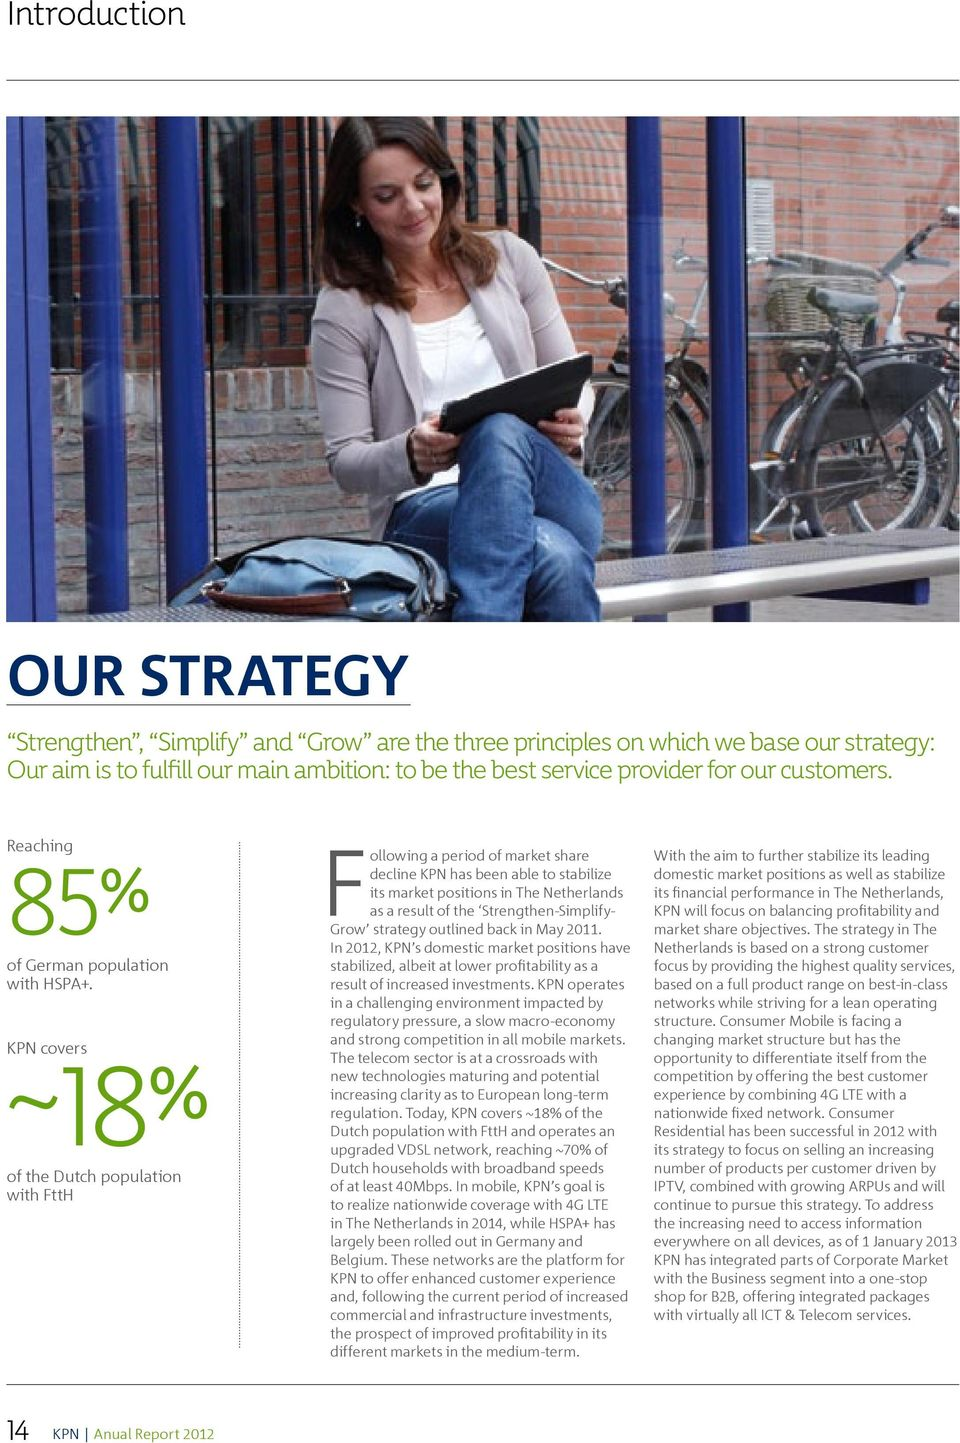 KPN covers ~ 18% of the Dutch population with FttH a period of market share decline KPN has been able to stabilize its market positions in The Netherlands as a result of the Strengthen-Simplify- Grow